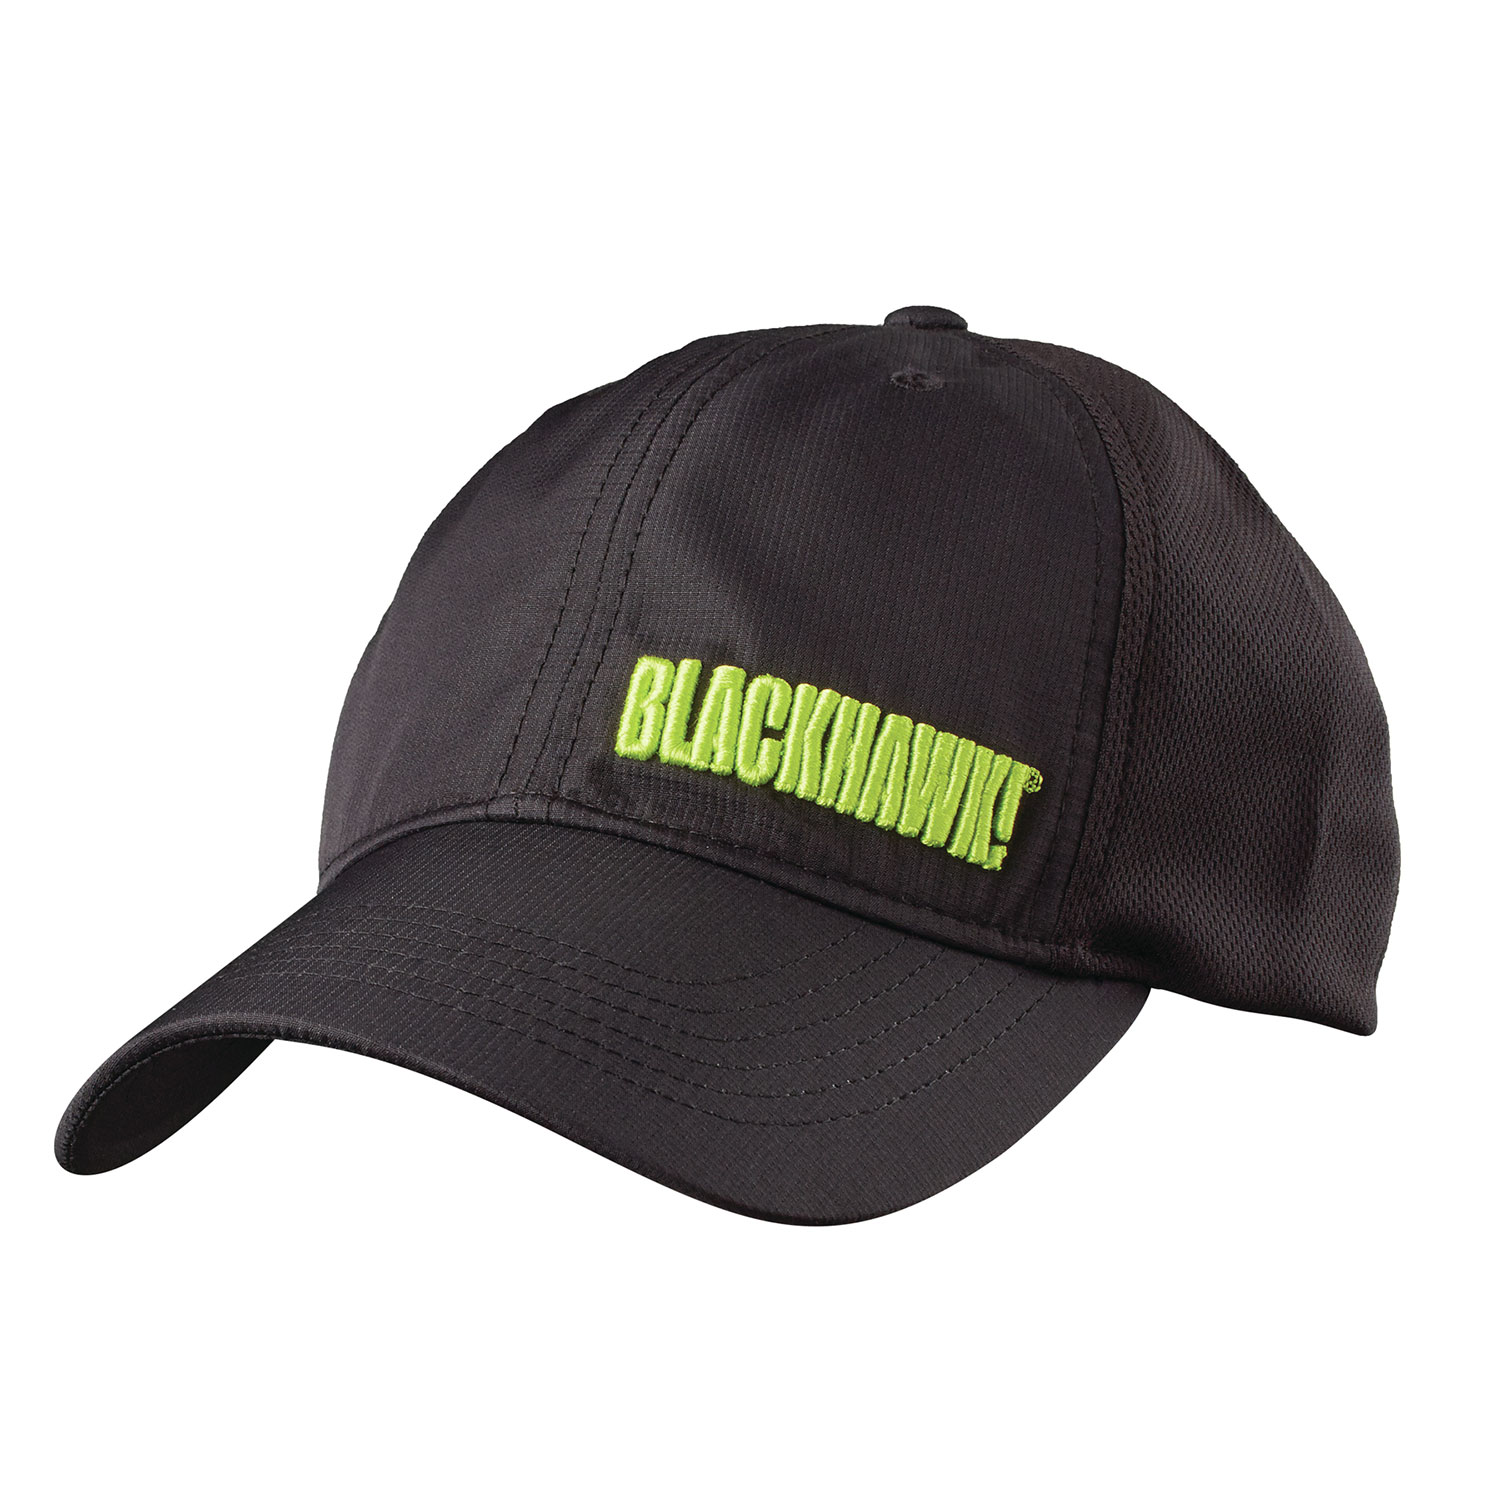 BLACKHAWK! Performance Mesh Cap